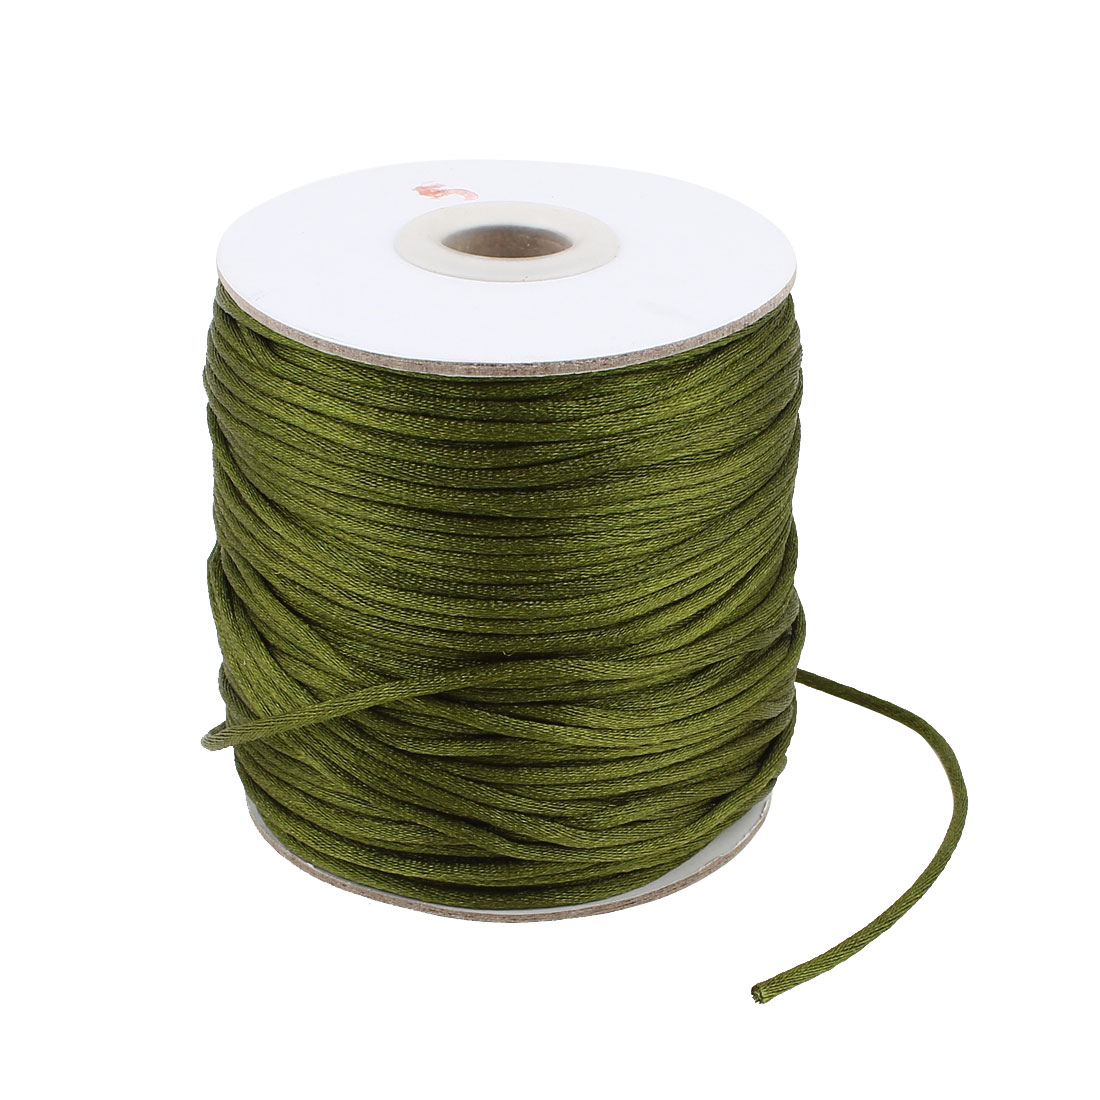 Green Nylon Handcraft Art Line DIY Chinese Knot Rattail Cord